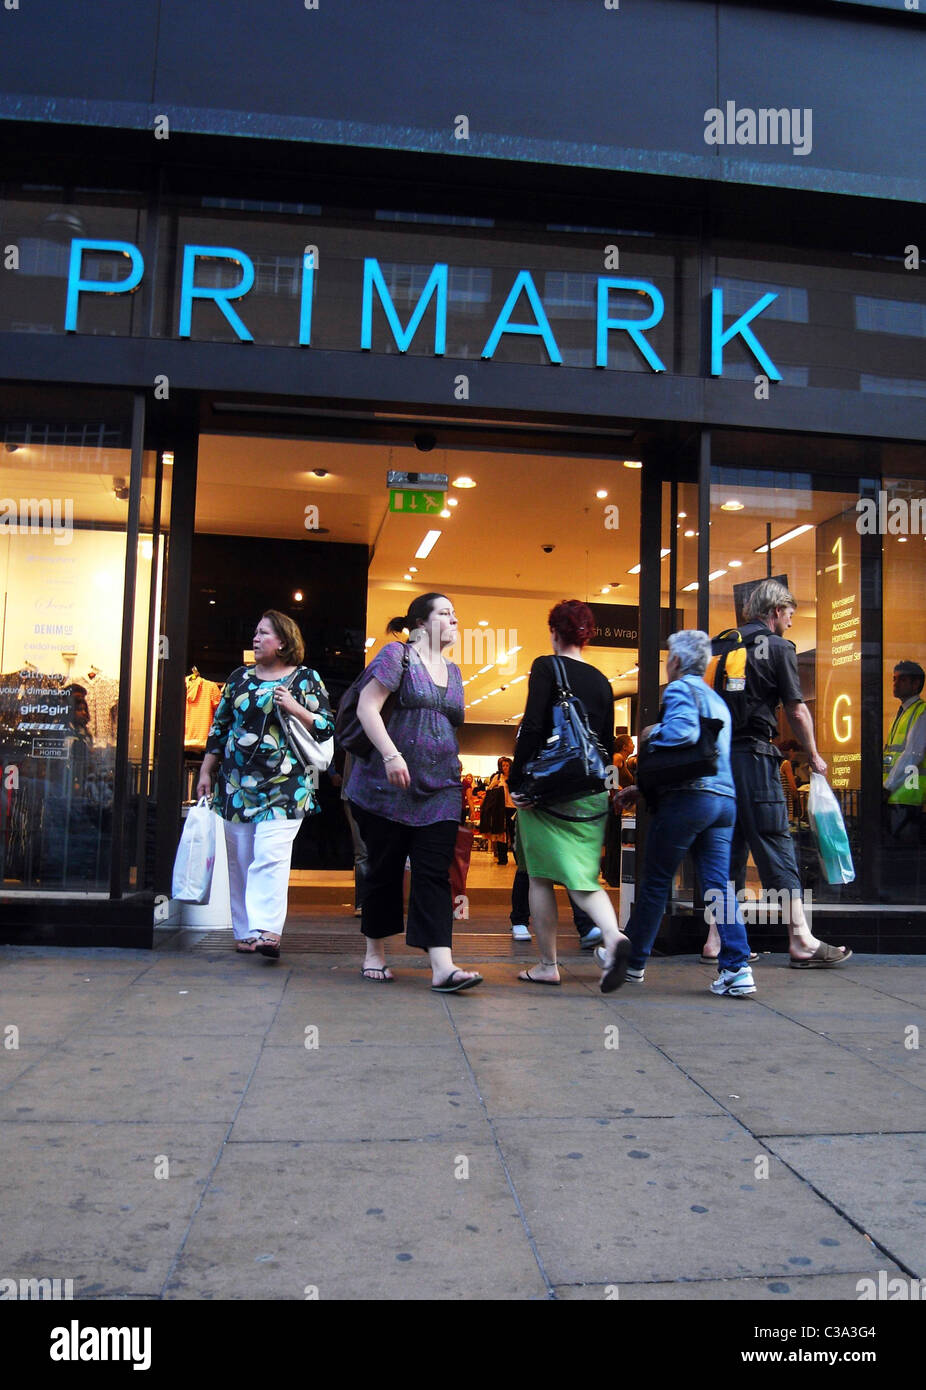 Exterior of the flagship Primark store on Oxford Street, am Associated British Foods brand. - Stock Image